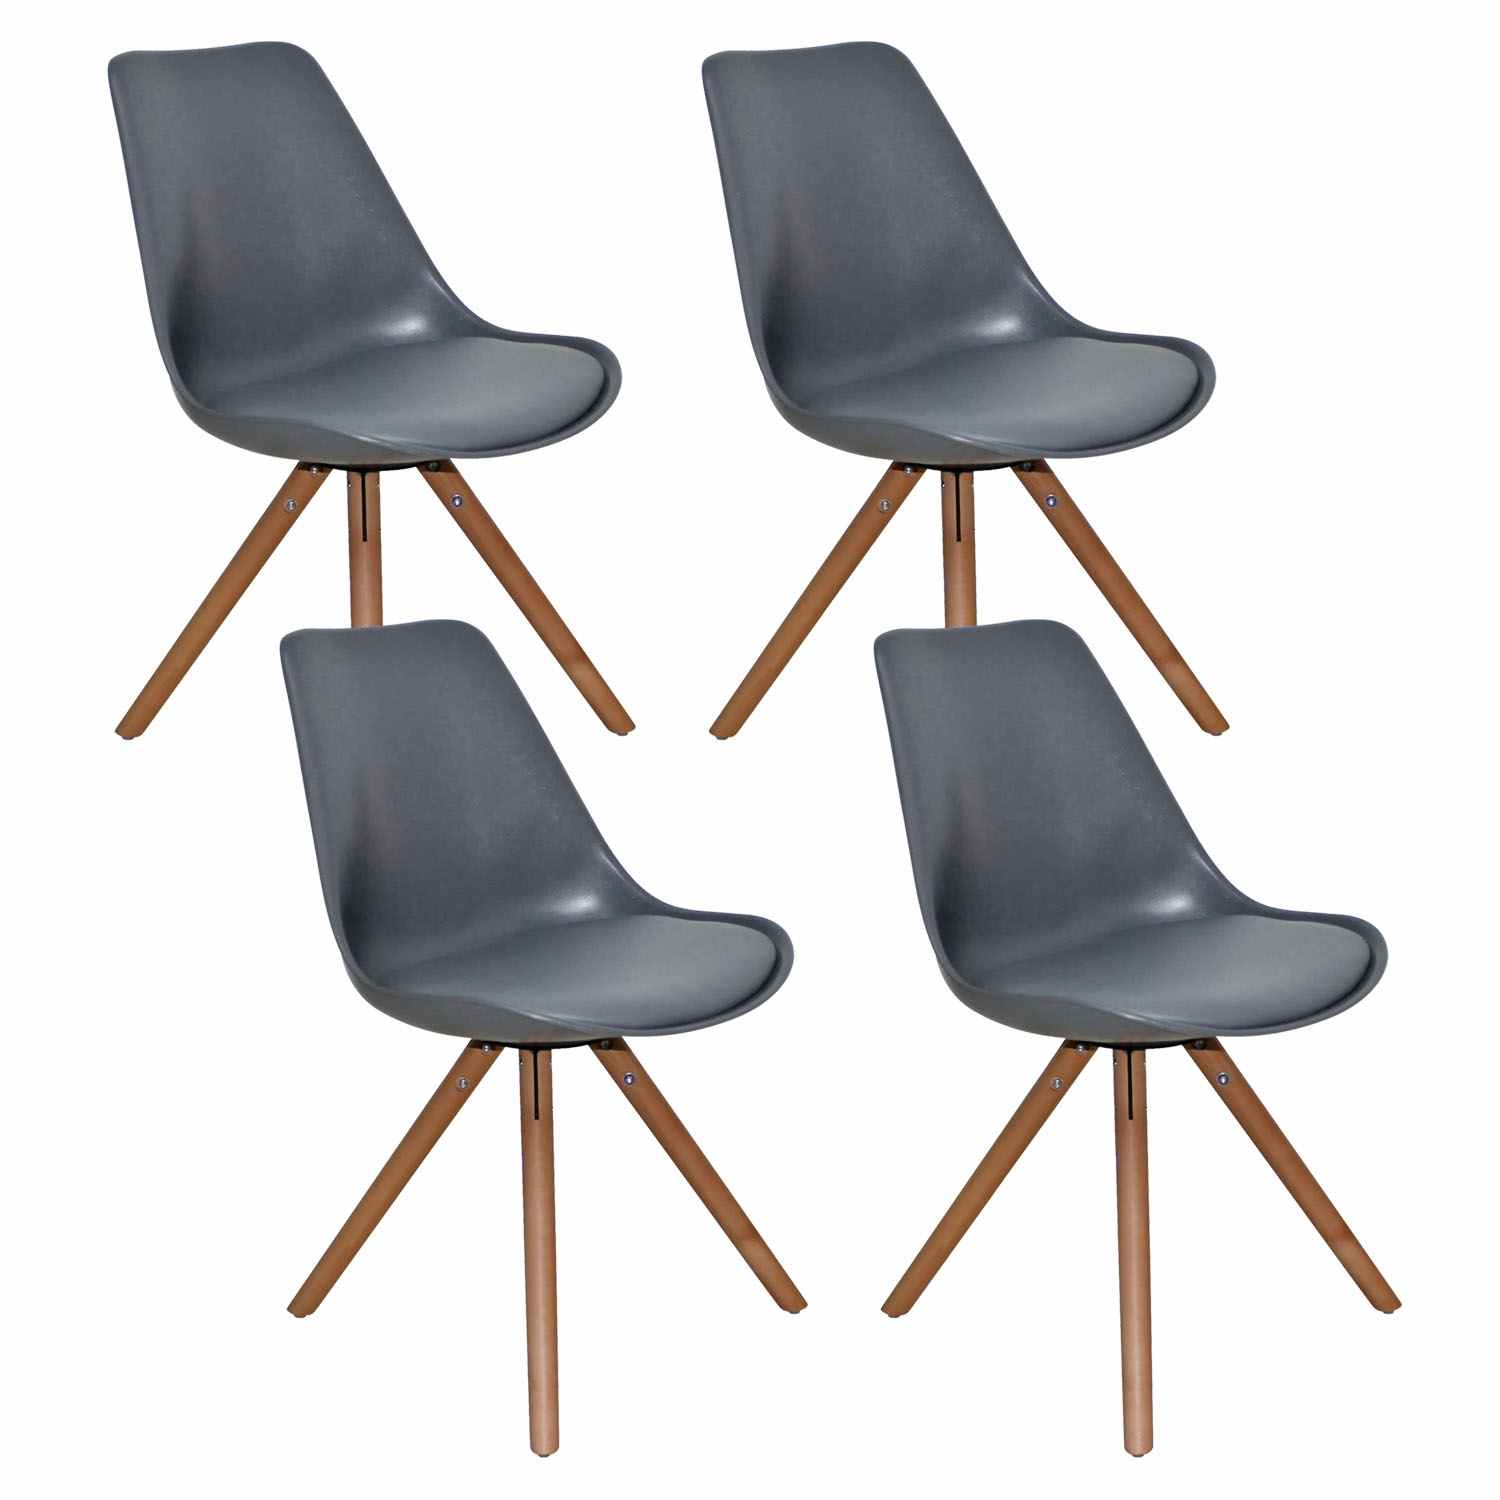 Deco in paris lot de 4 chaises design gris velta velta for Chaise de designer